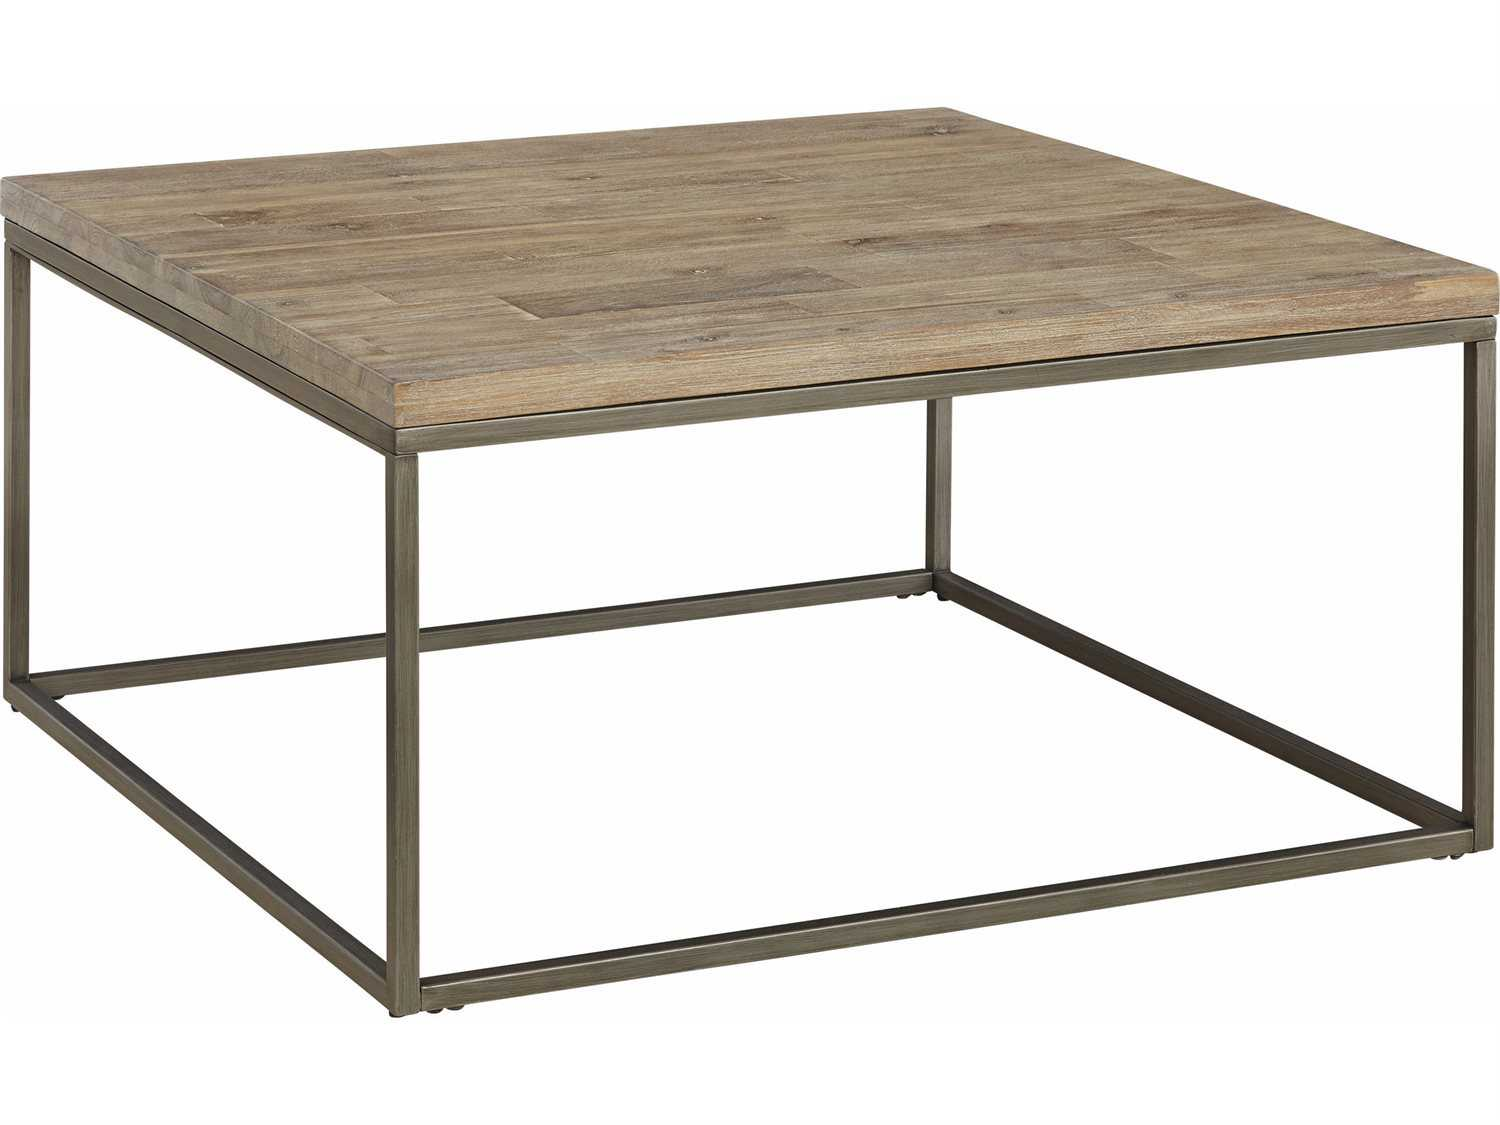 Casana Alana Weathered Acacia 36 39 39 Square Coffee Table Cx836065acg065